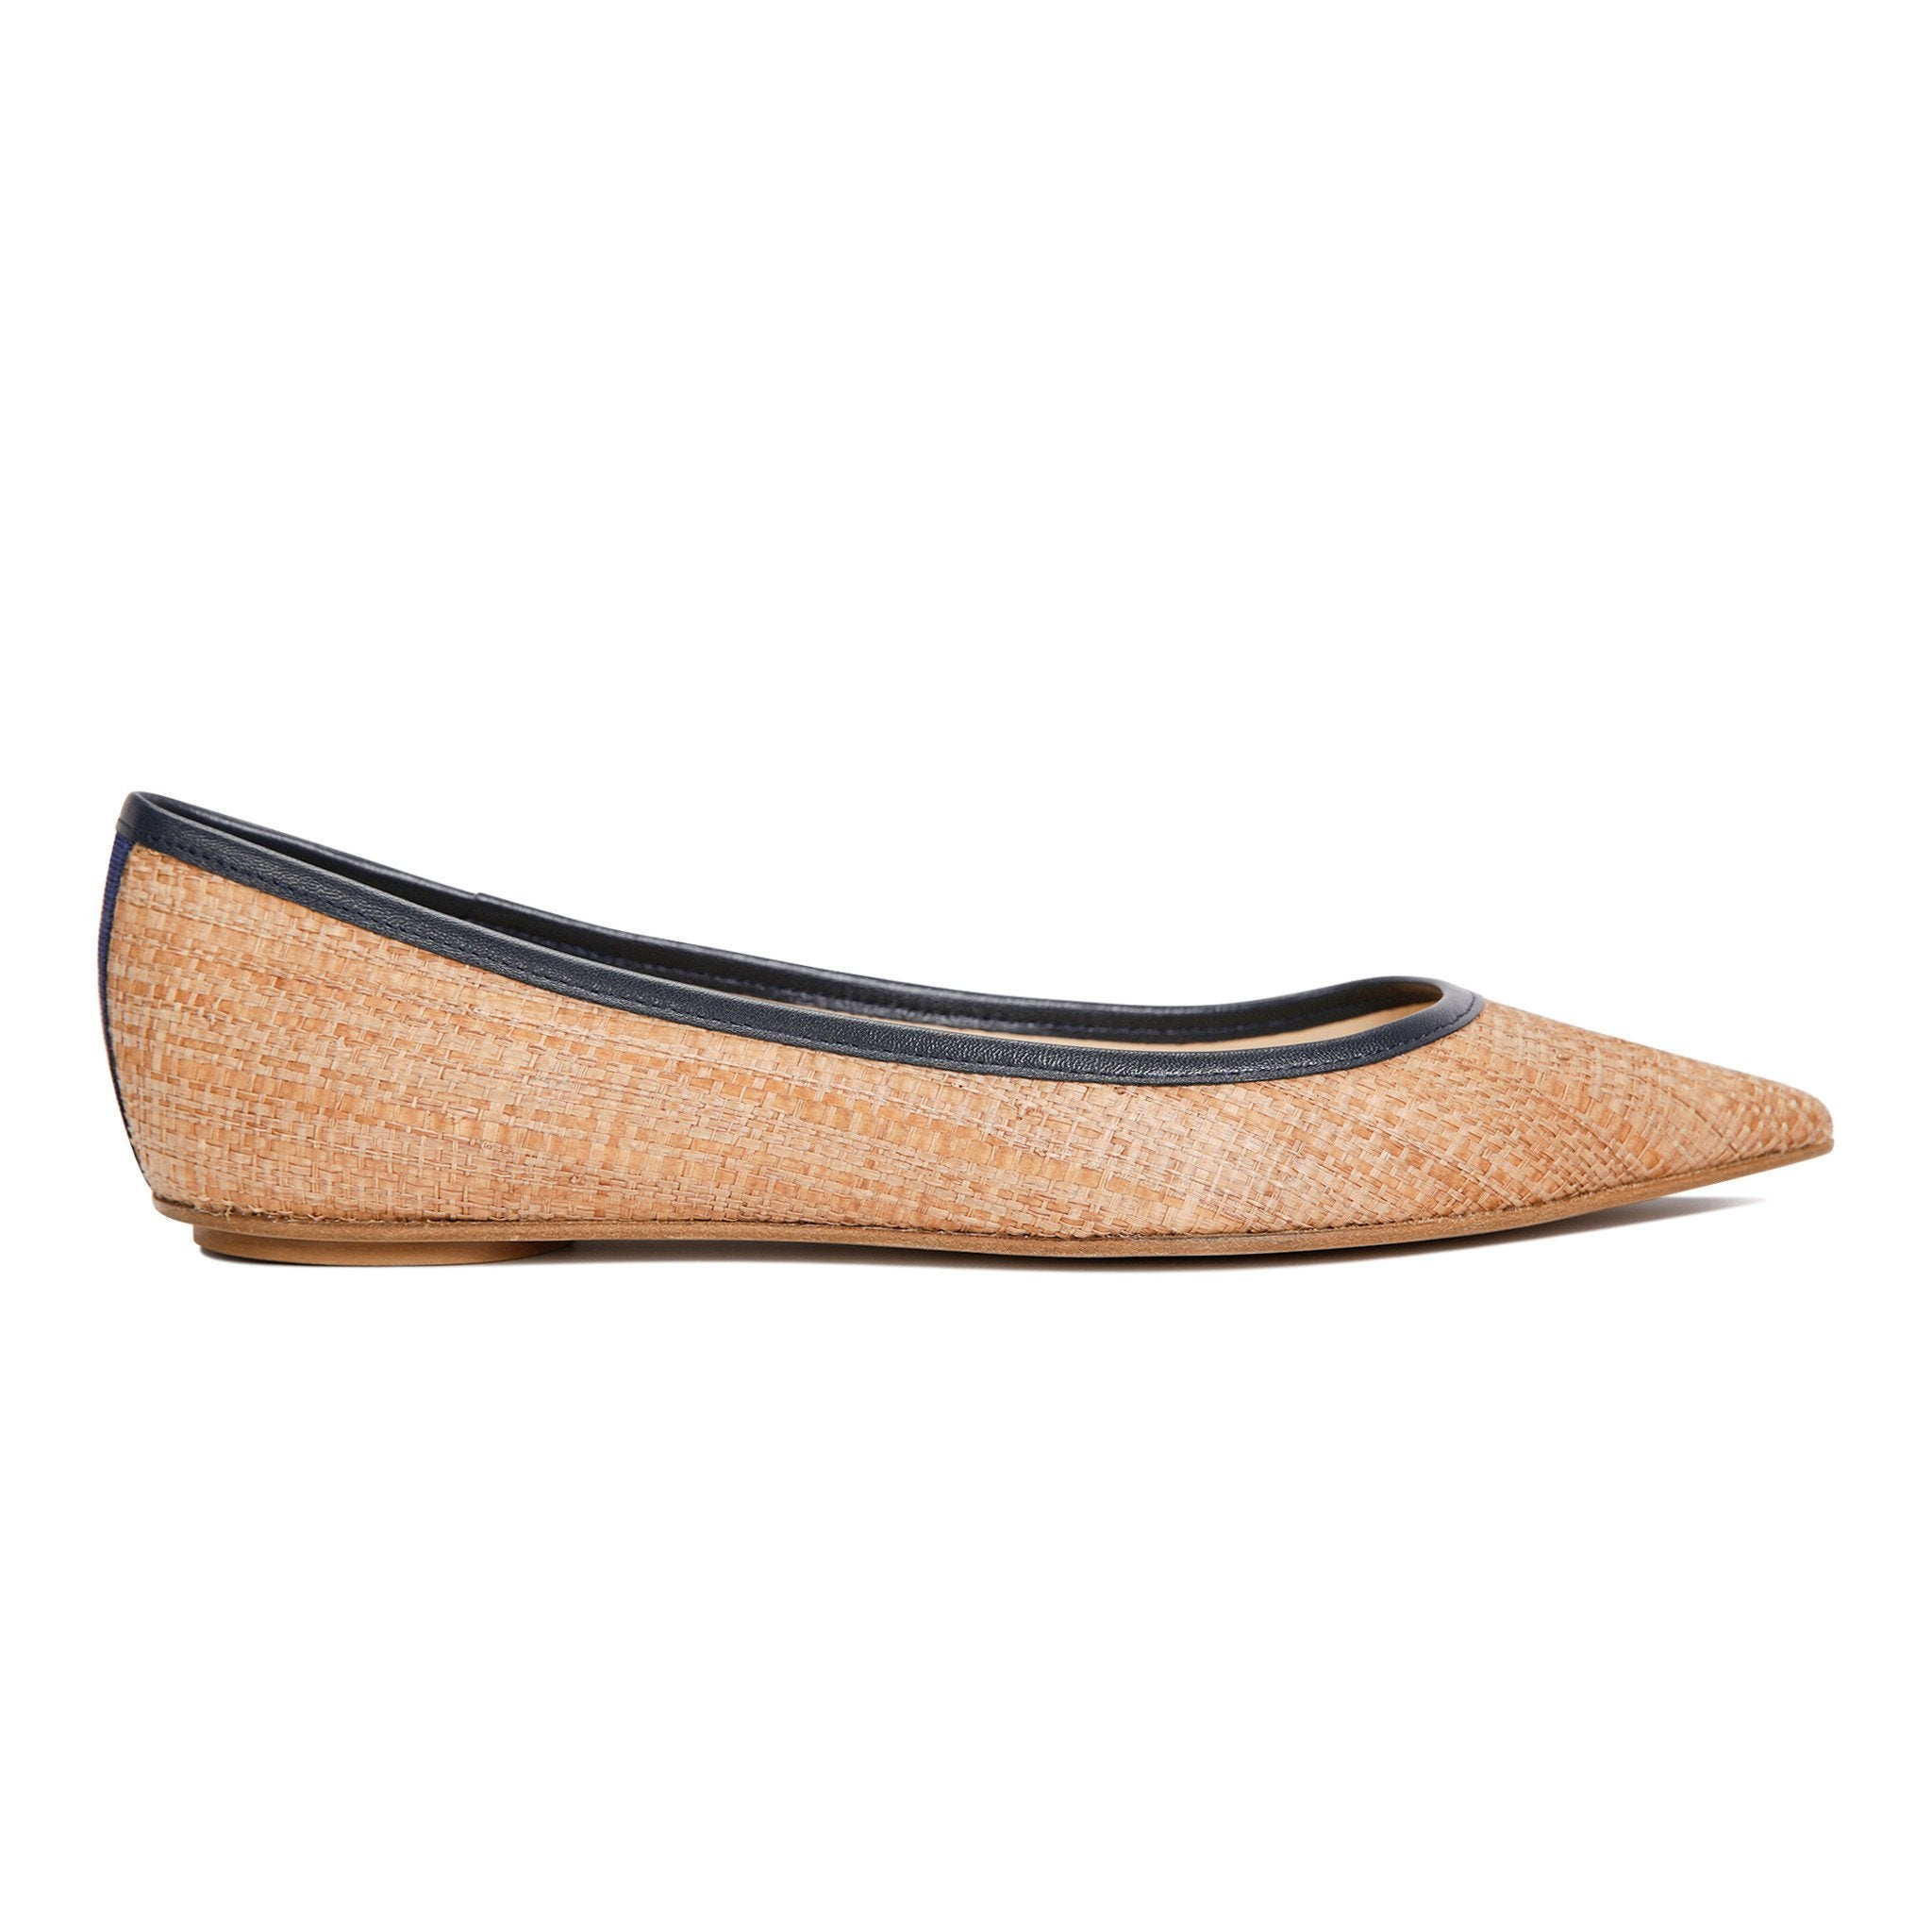 COMO - Natural Raffia + Nappa Navy, VIAJIYU - Women's Hand Made Sustainable Luxury Shoes. Made in Italy. Made to Order.